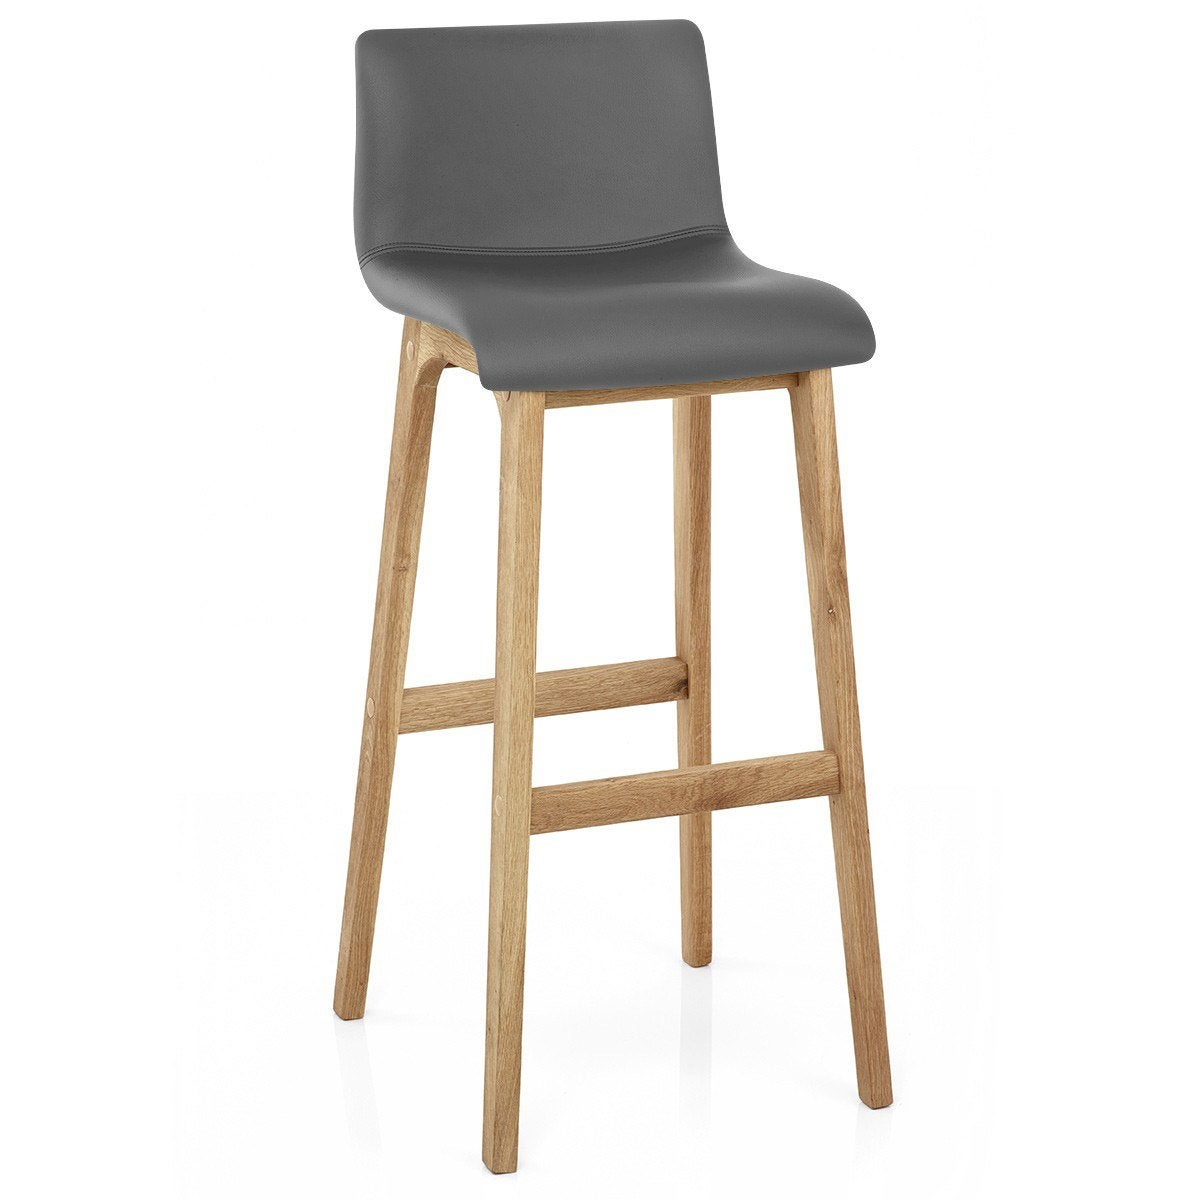 Tabouret de bar nature, simili cuir, gris, Wave